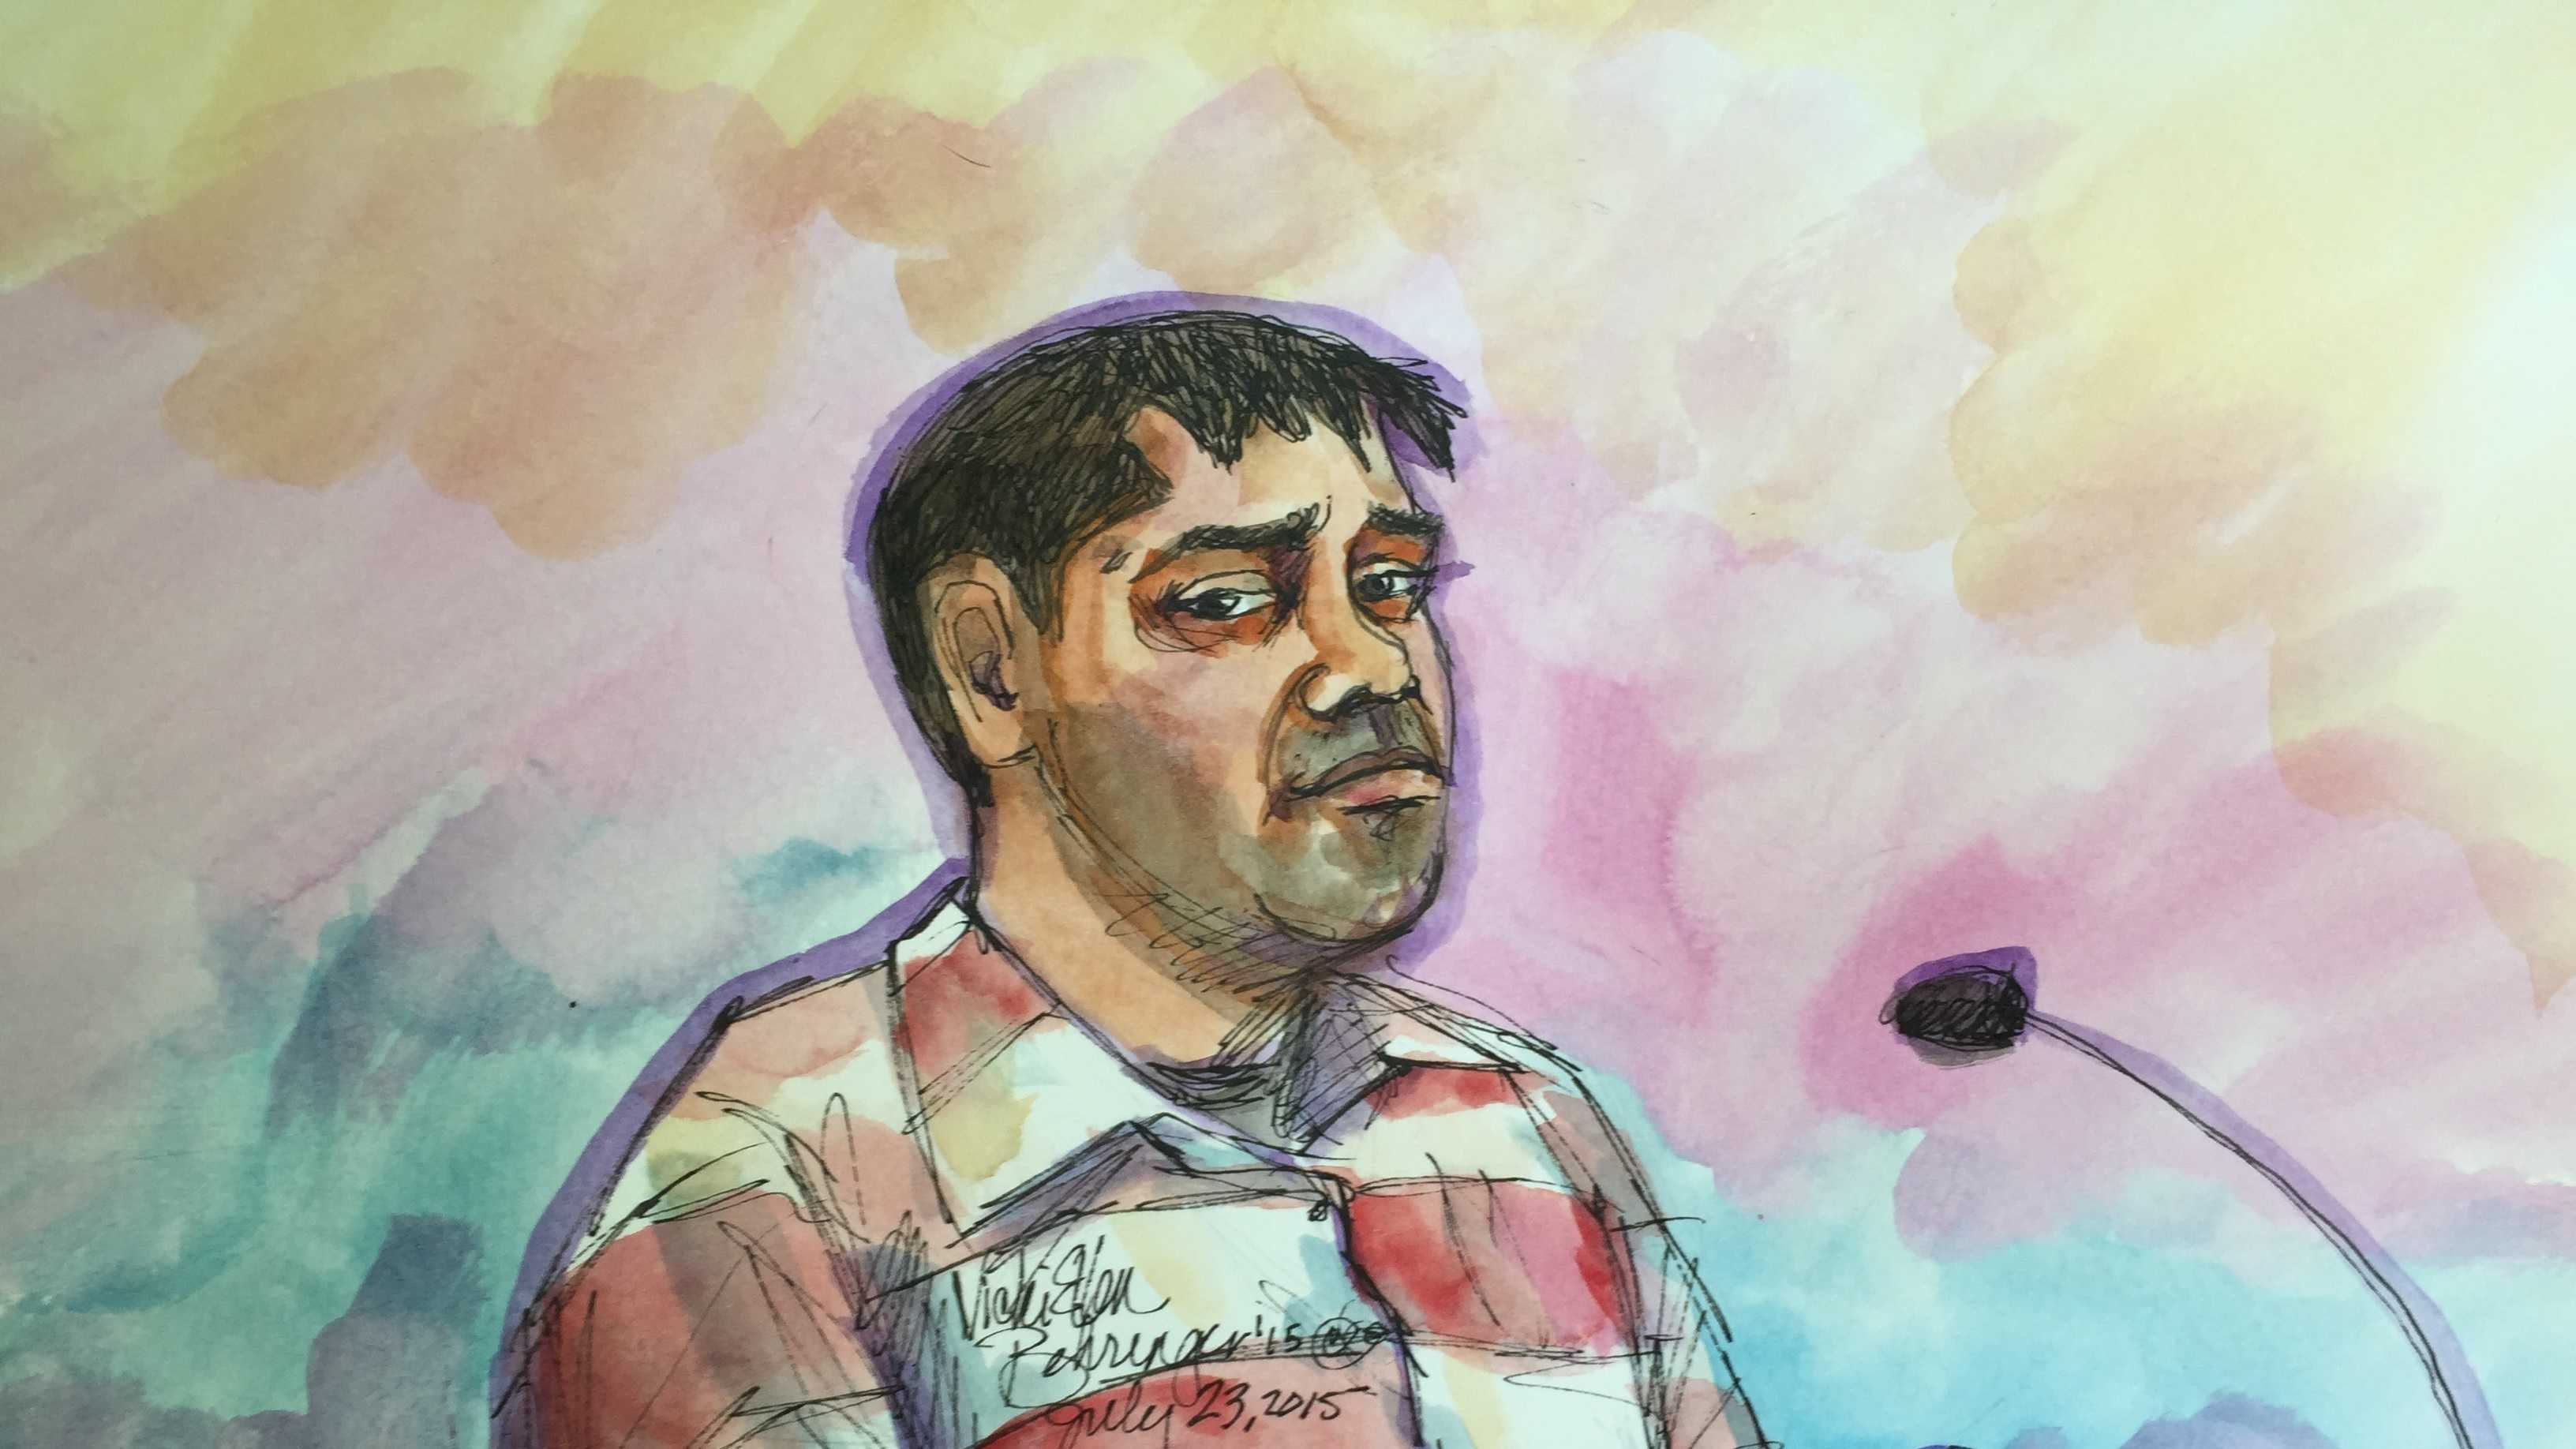 Martin Martinez in court (July 23, 2015)